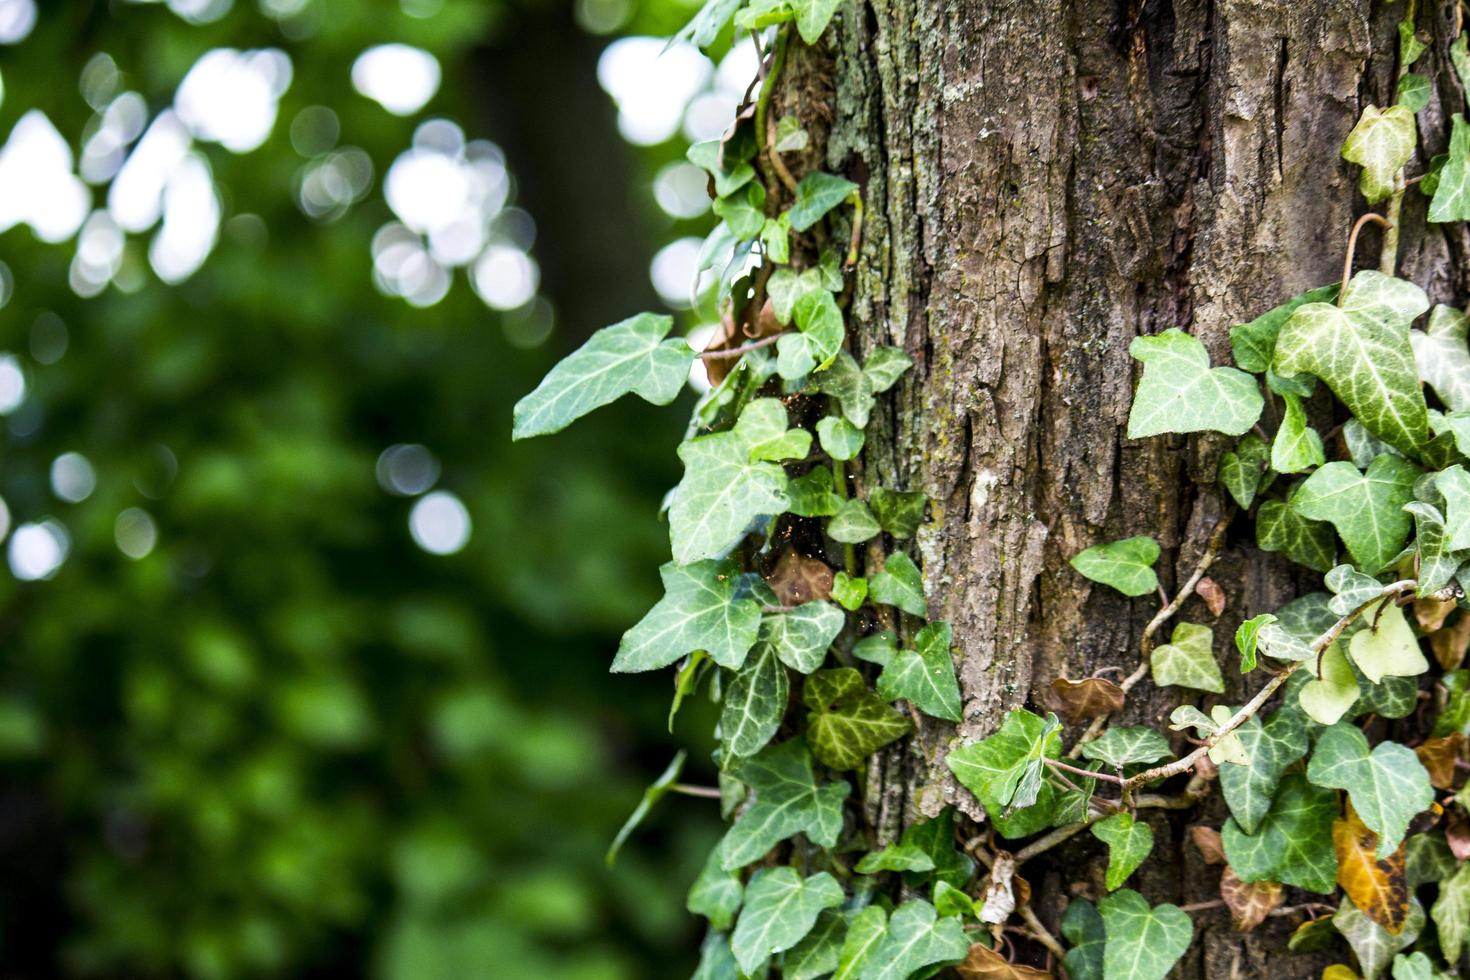 Ivy growing along a forest tree photo